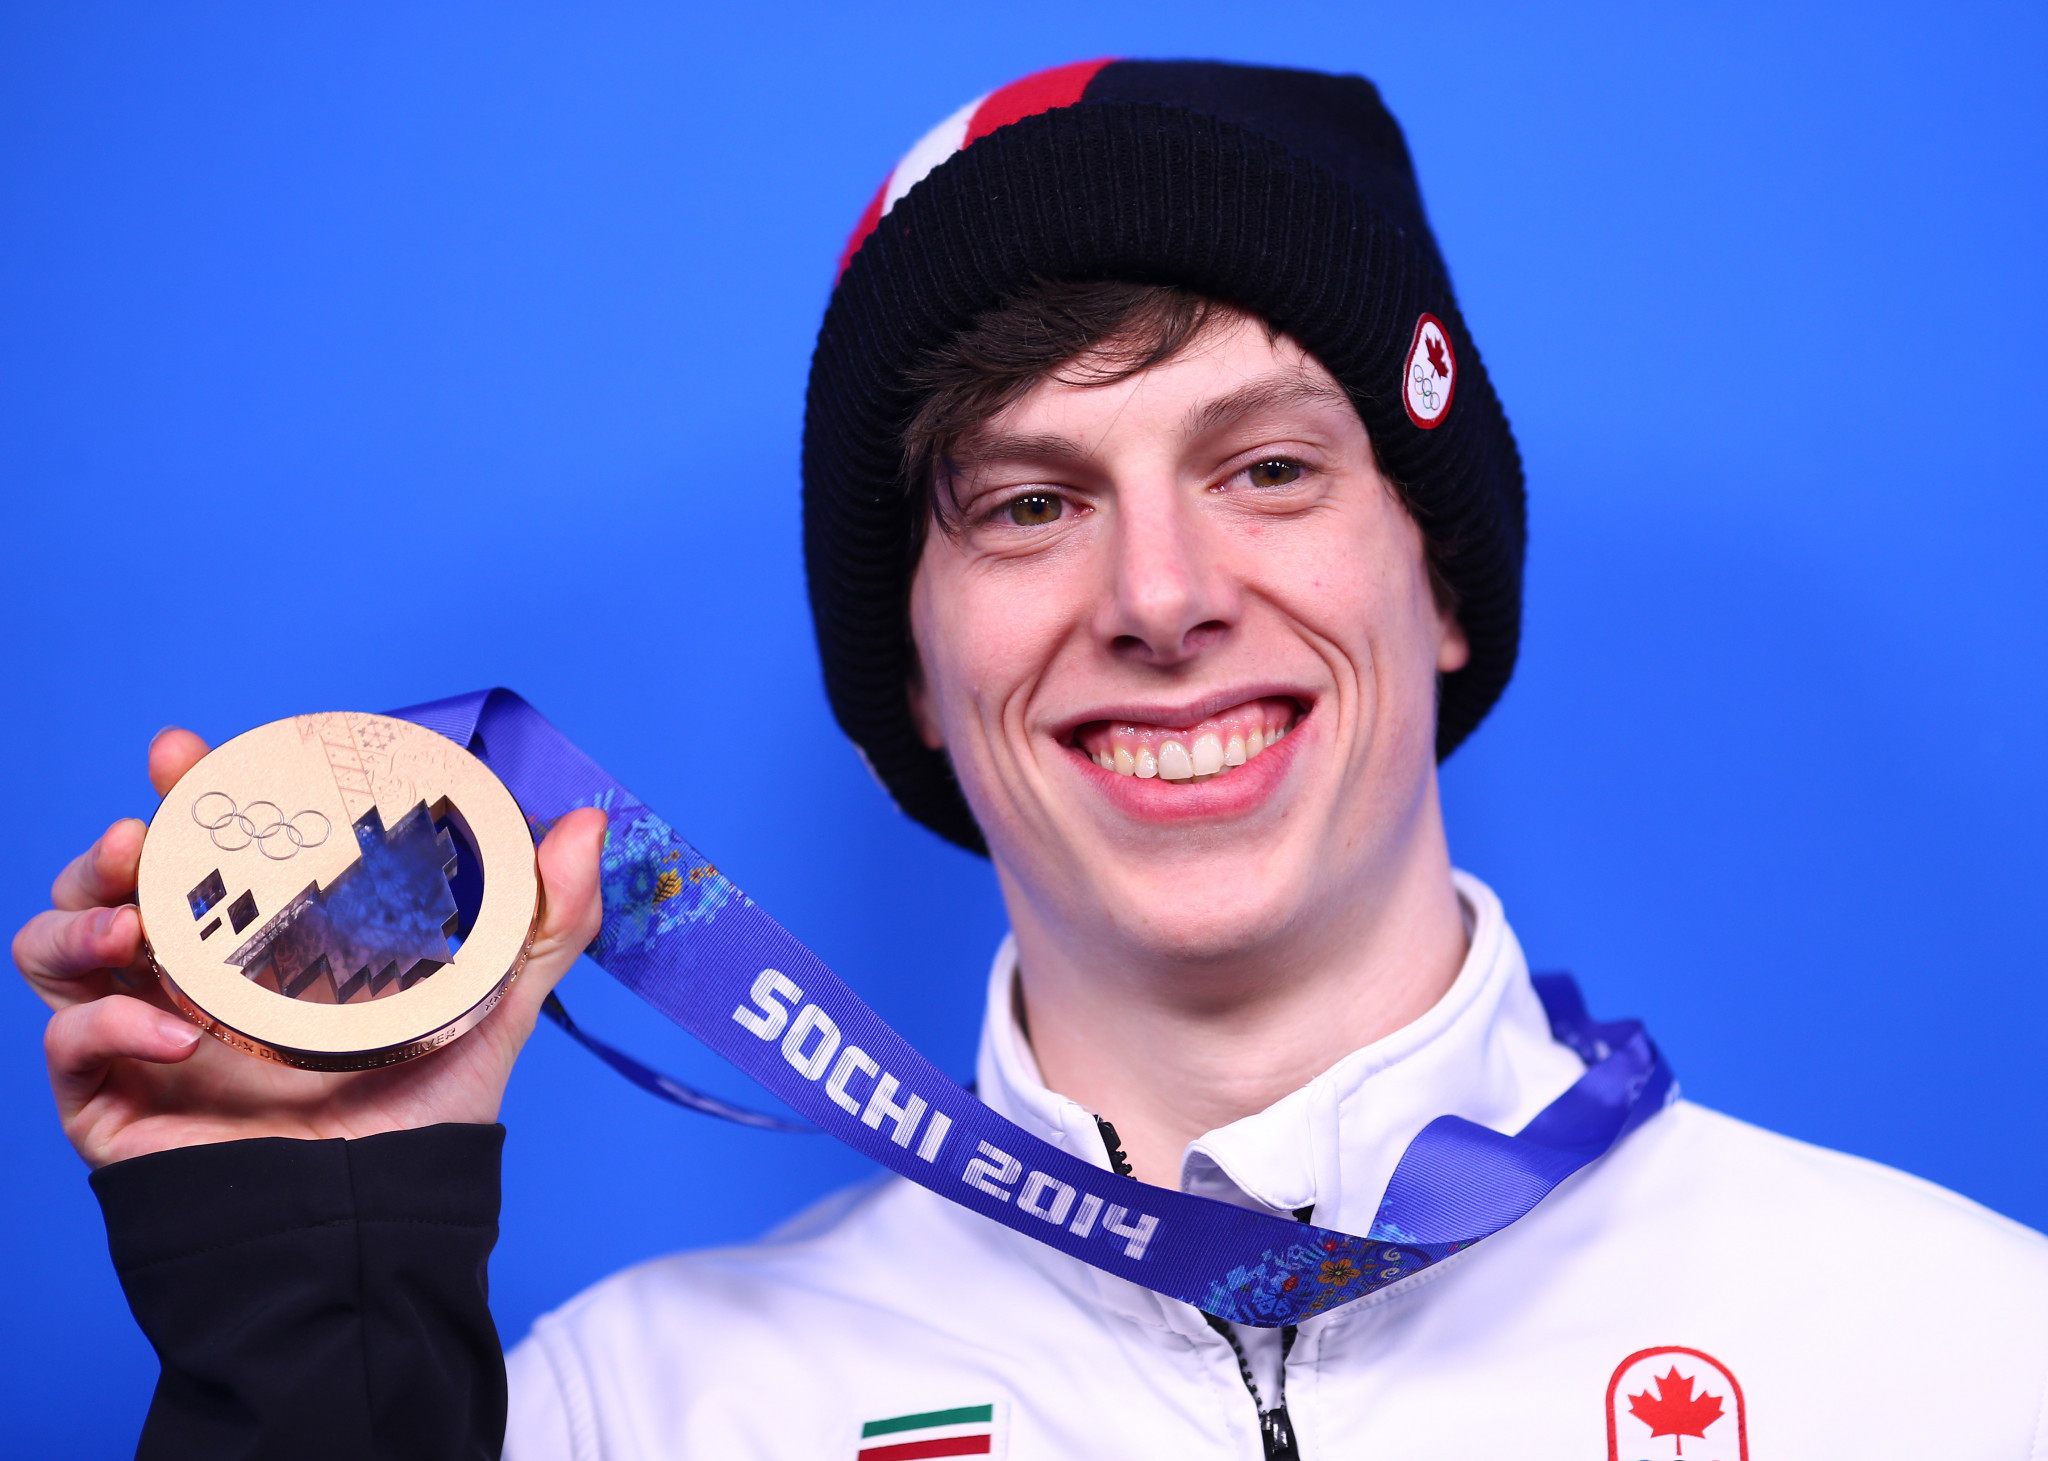 Charle Cournoyer won a surprise bronze medal over 500 metres at his first Winter Olympics in Sochi  ©Getty Images